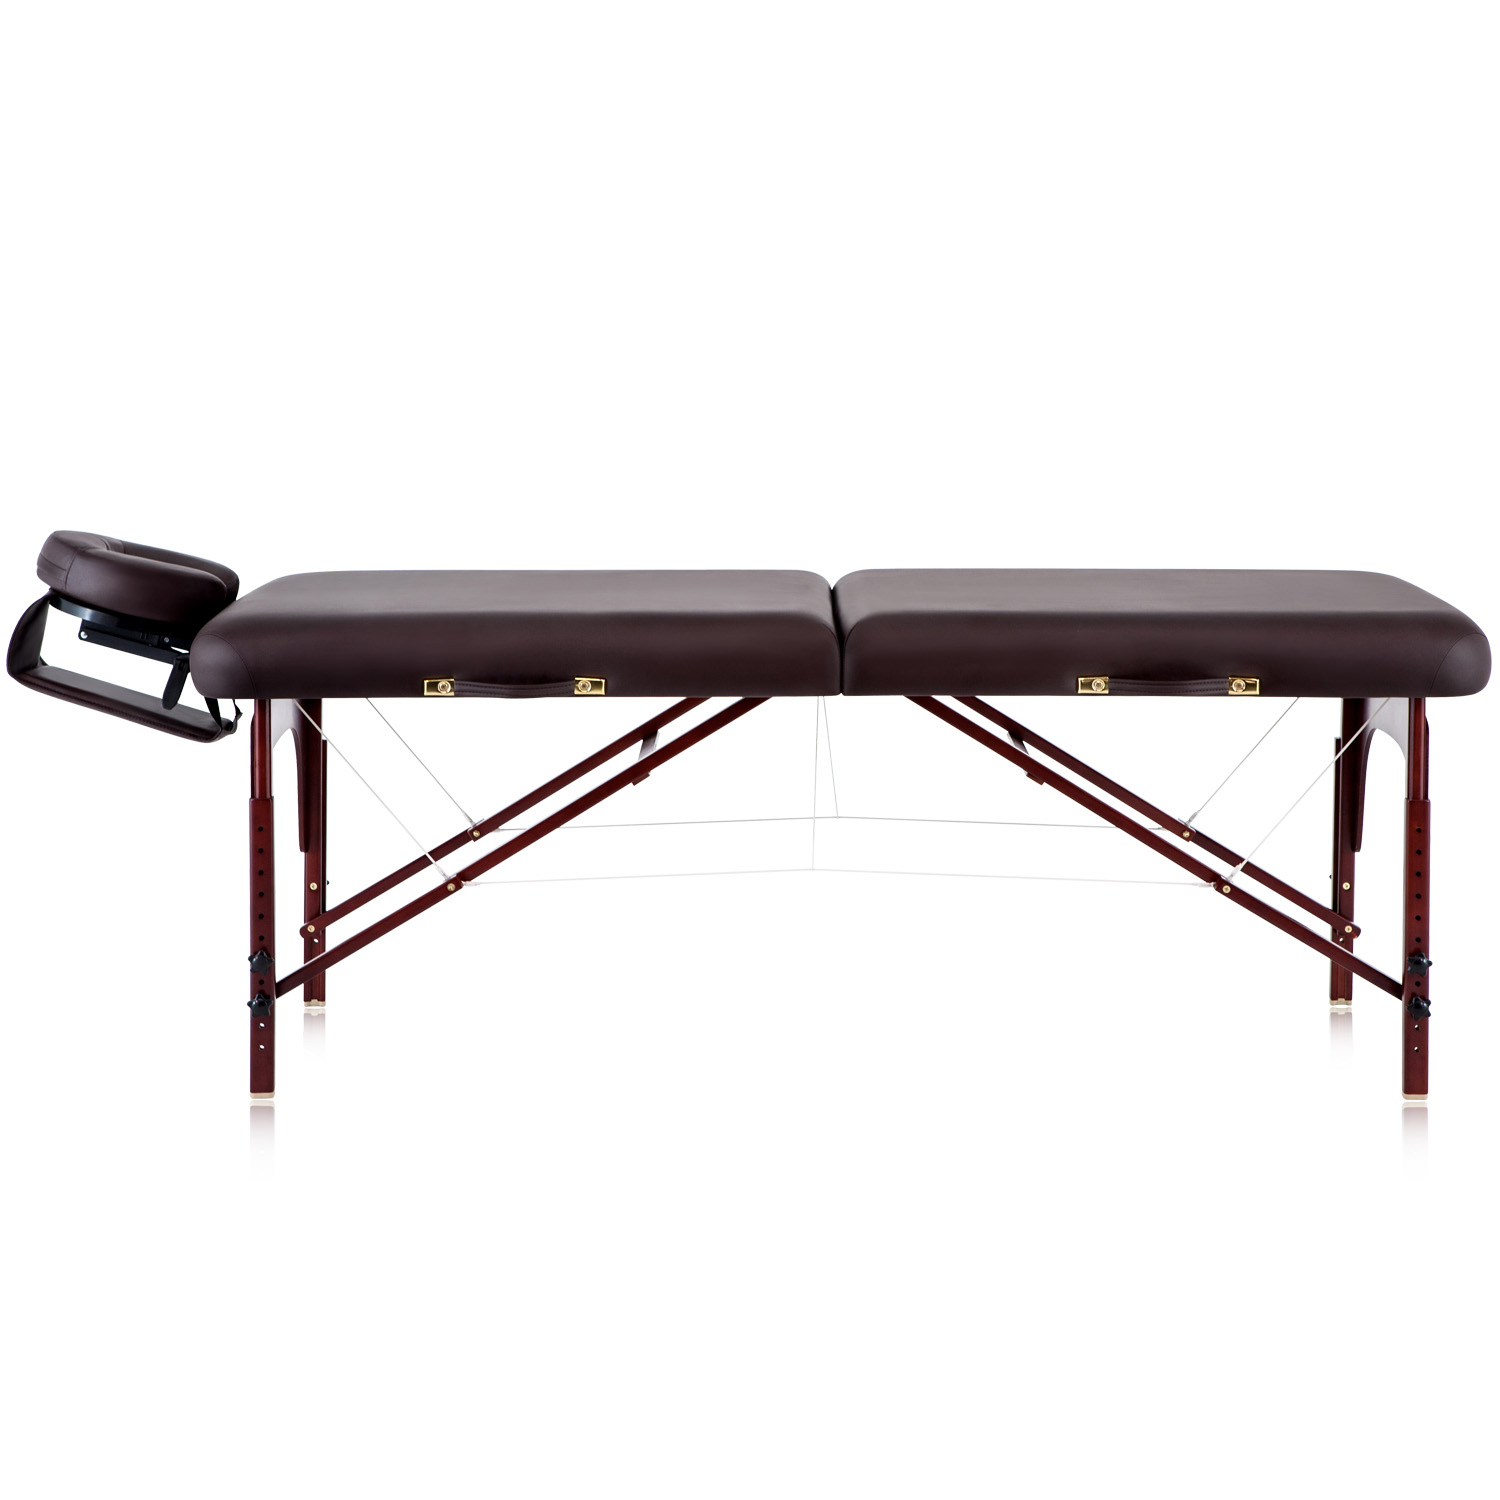 massage fold up portable malaysia in table for sale